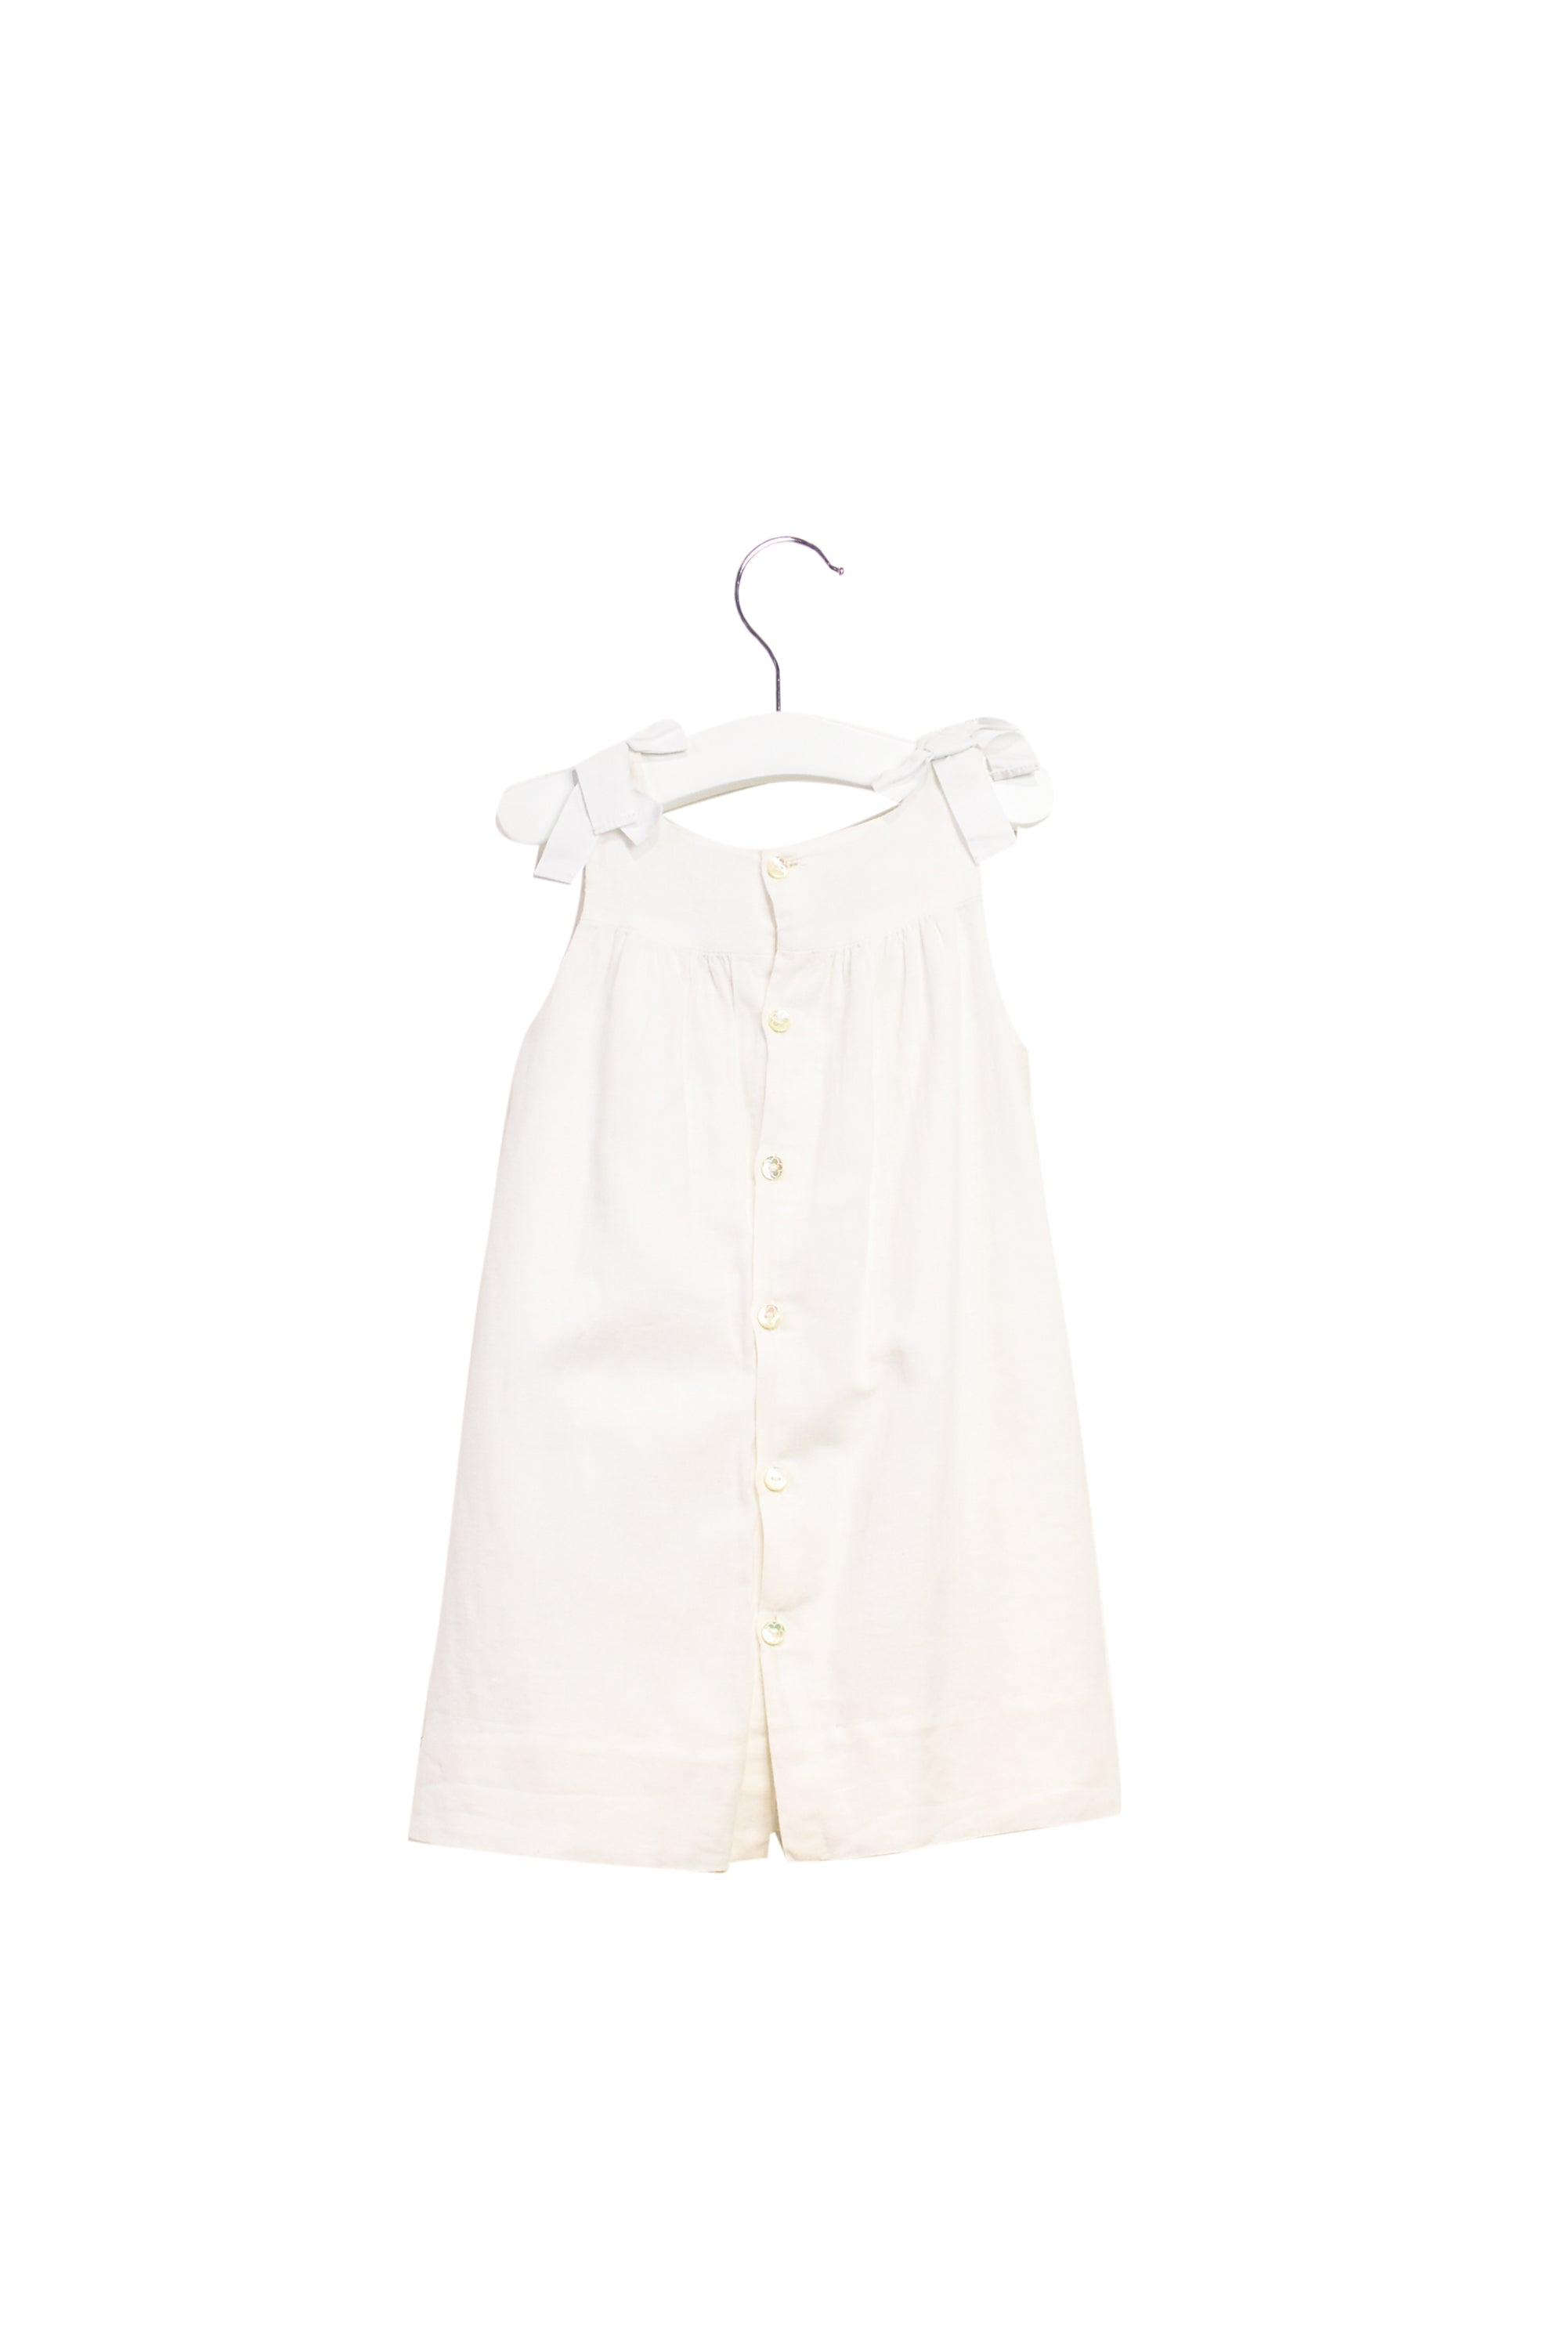 10023646 Jacadi Baby~Dress and Bloomer 18M at Retykle